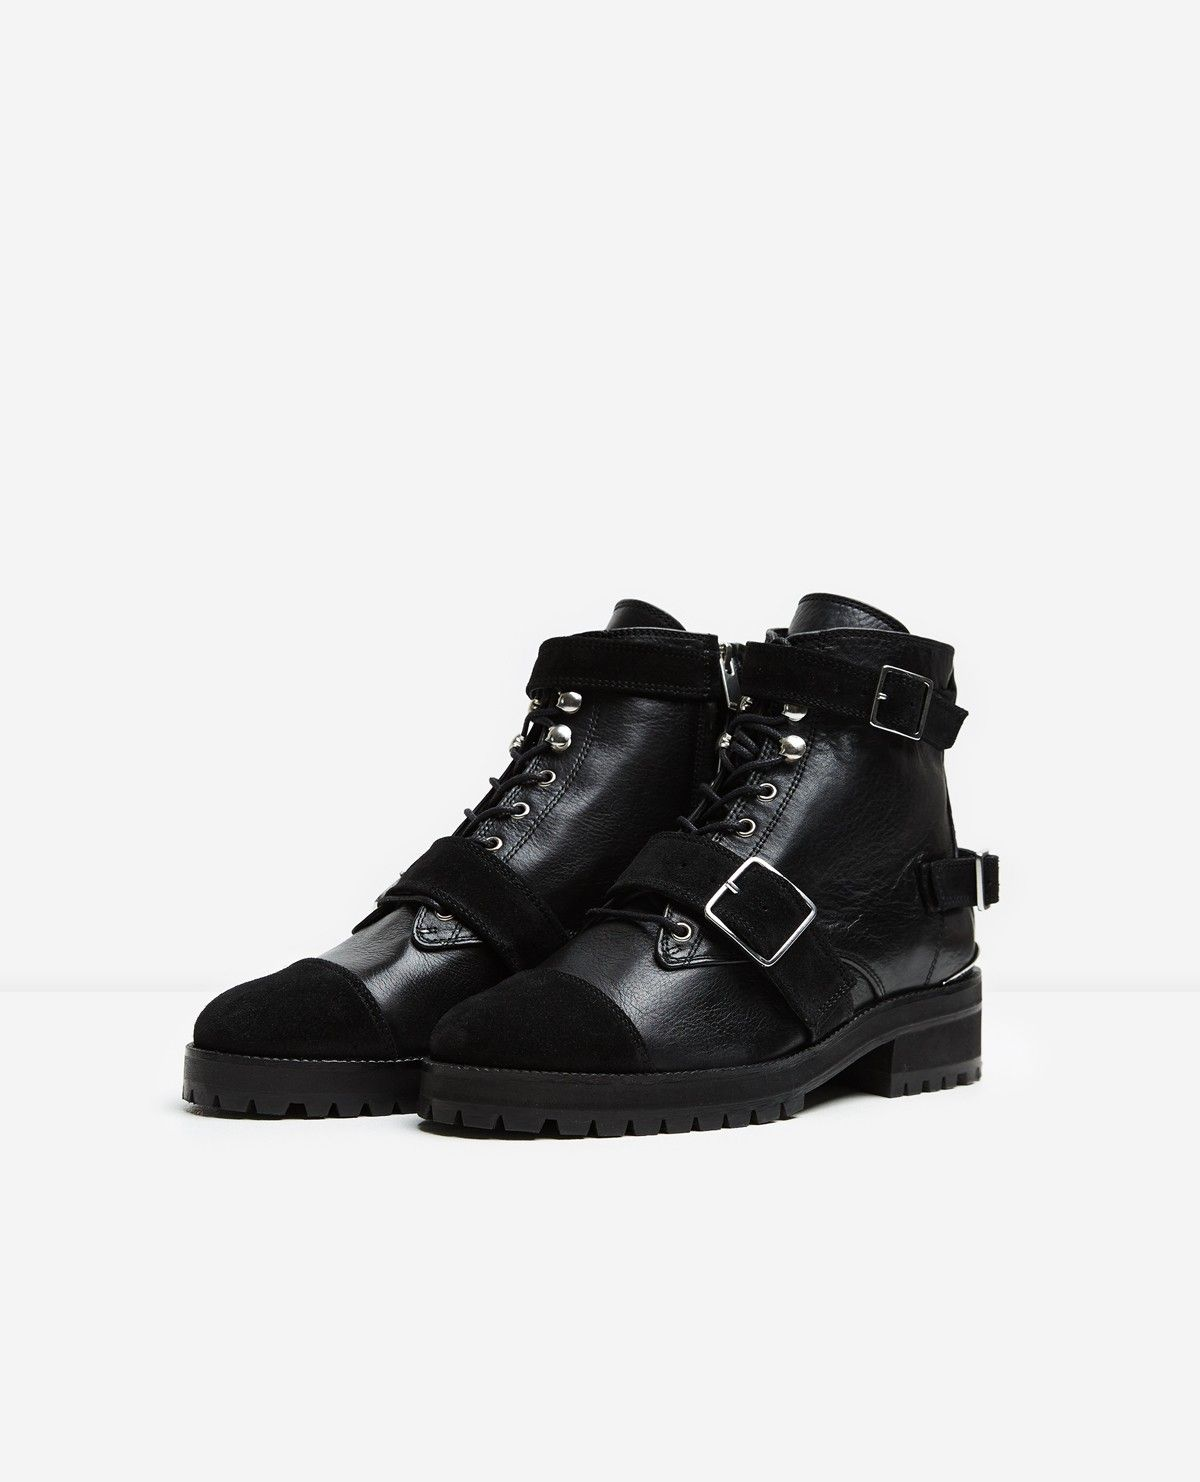 Aberdeen FOOTWEAR - Lace-up shoes The Kooples Outlet Excellent 3cXRsHa